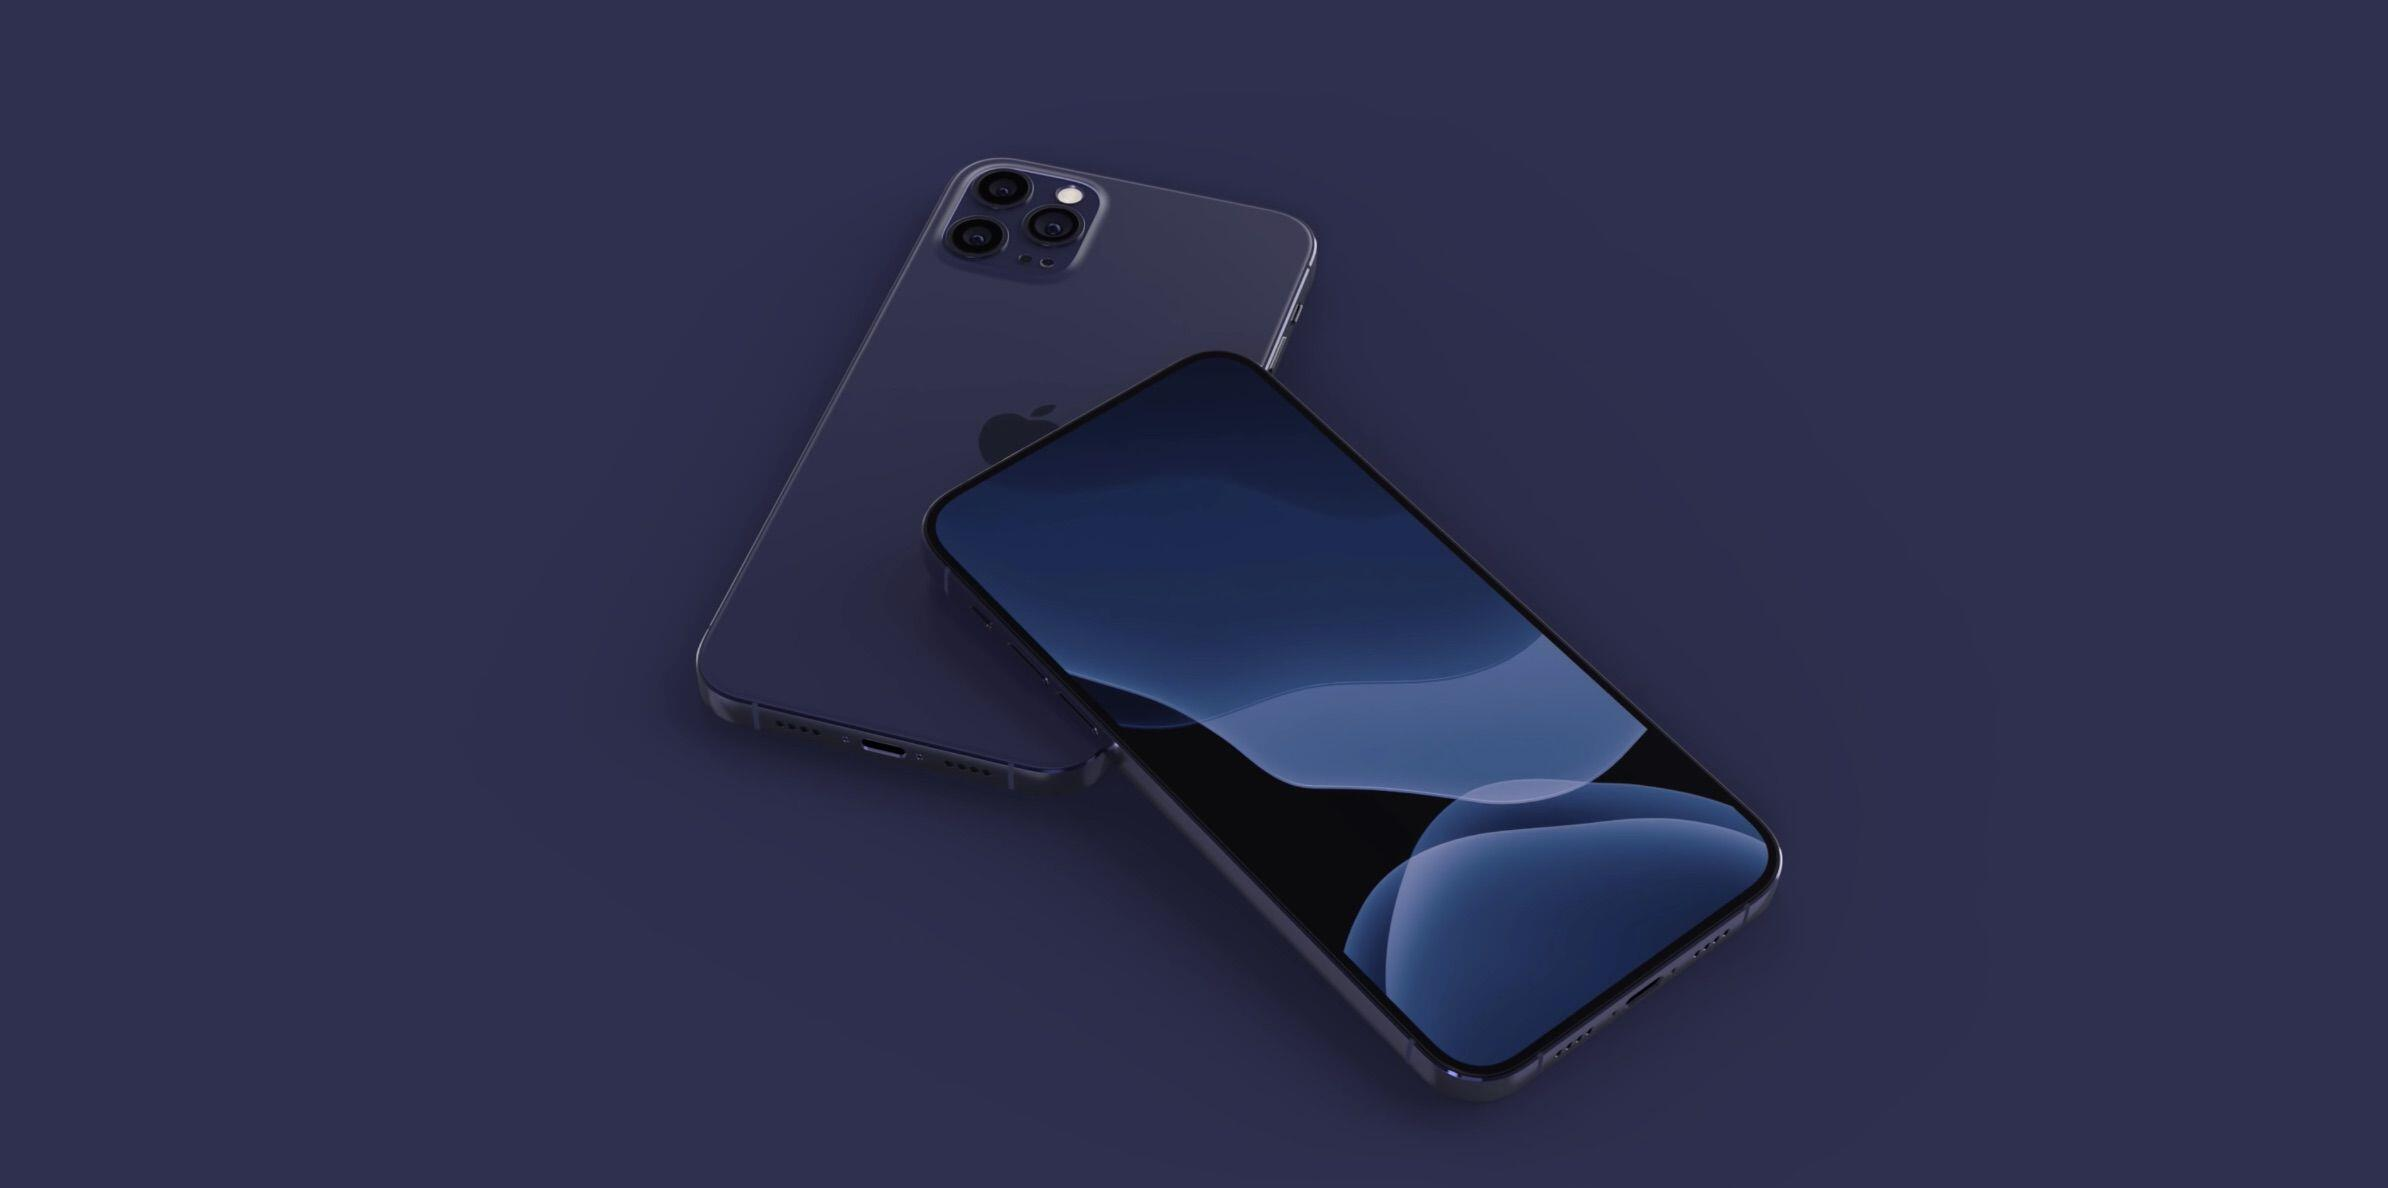 iphone-12-pro-navy-blue